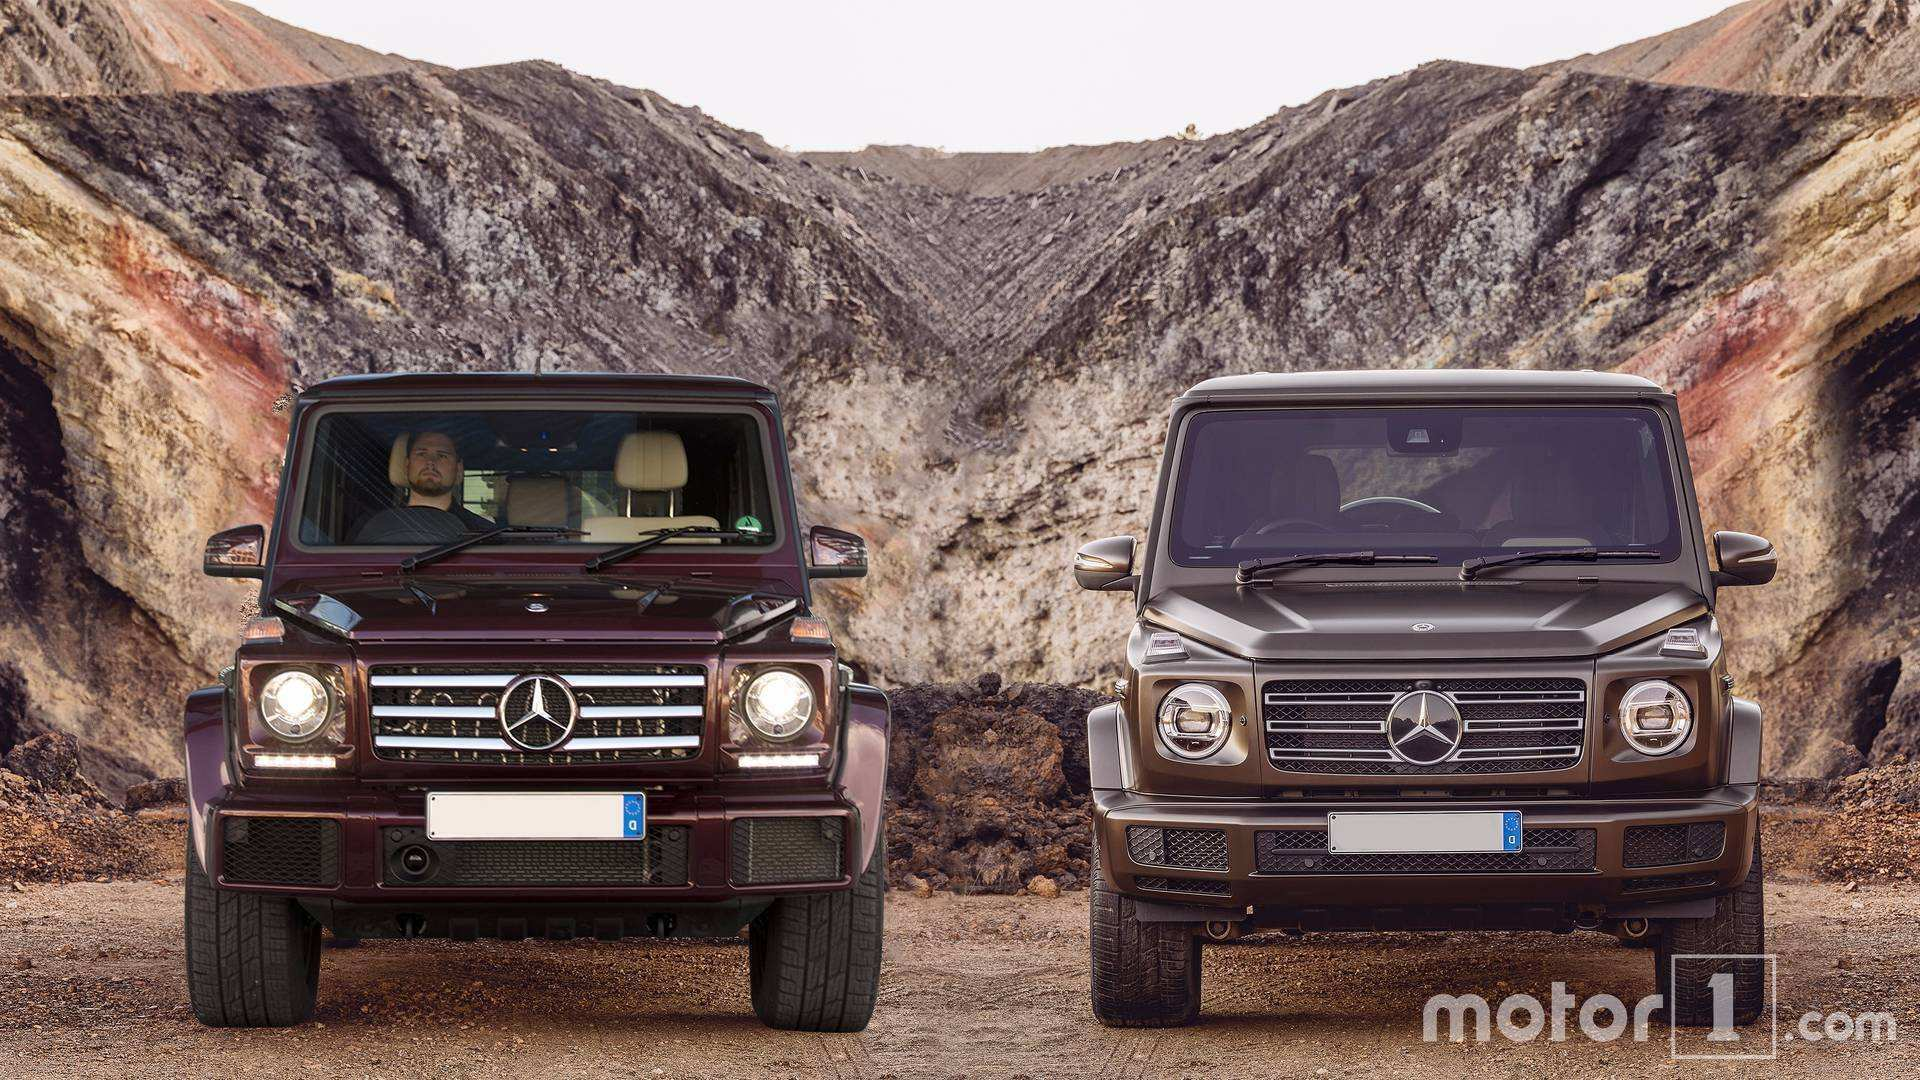 35 All New 2020 Mercedes G Wagon Exterior Ratings by 2020 Mercedes G Wagon Exterior